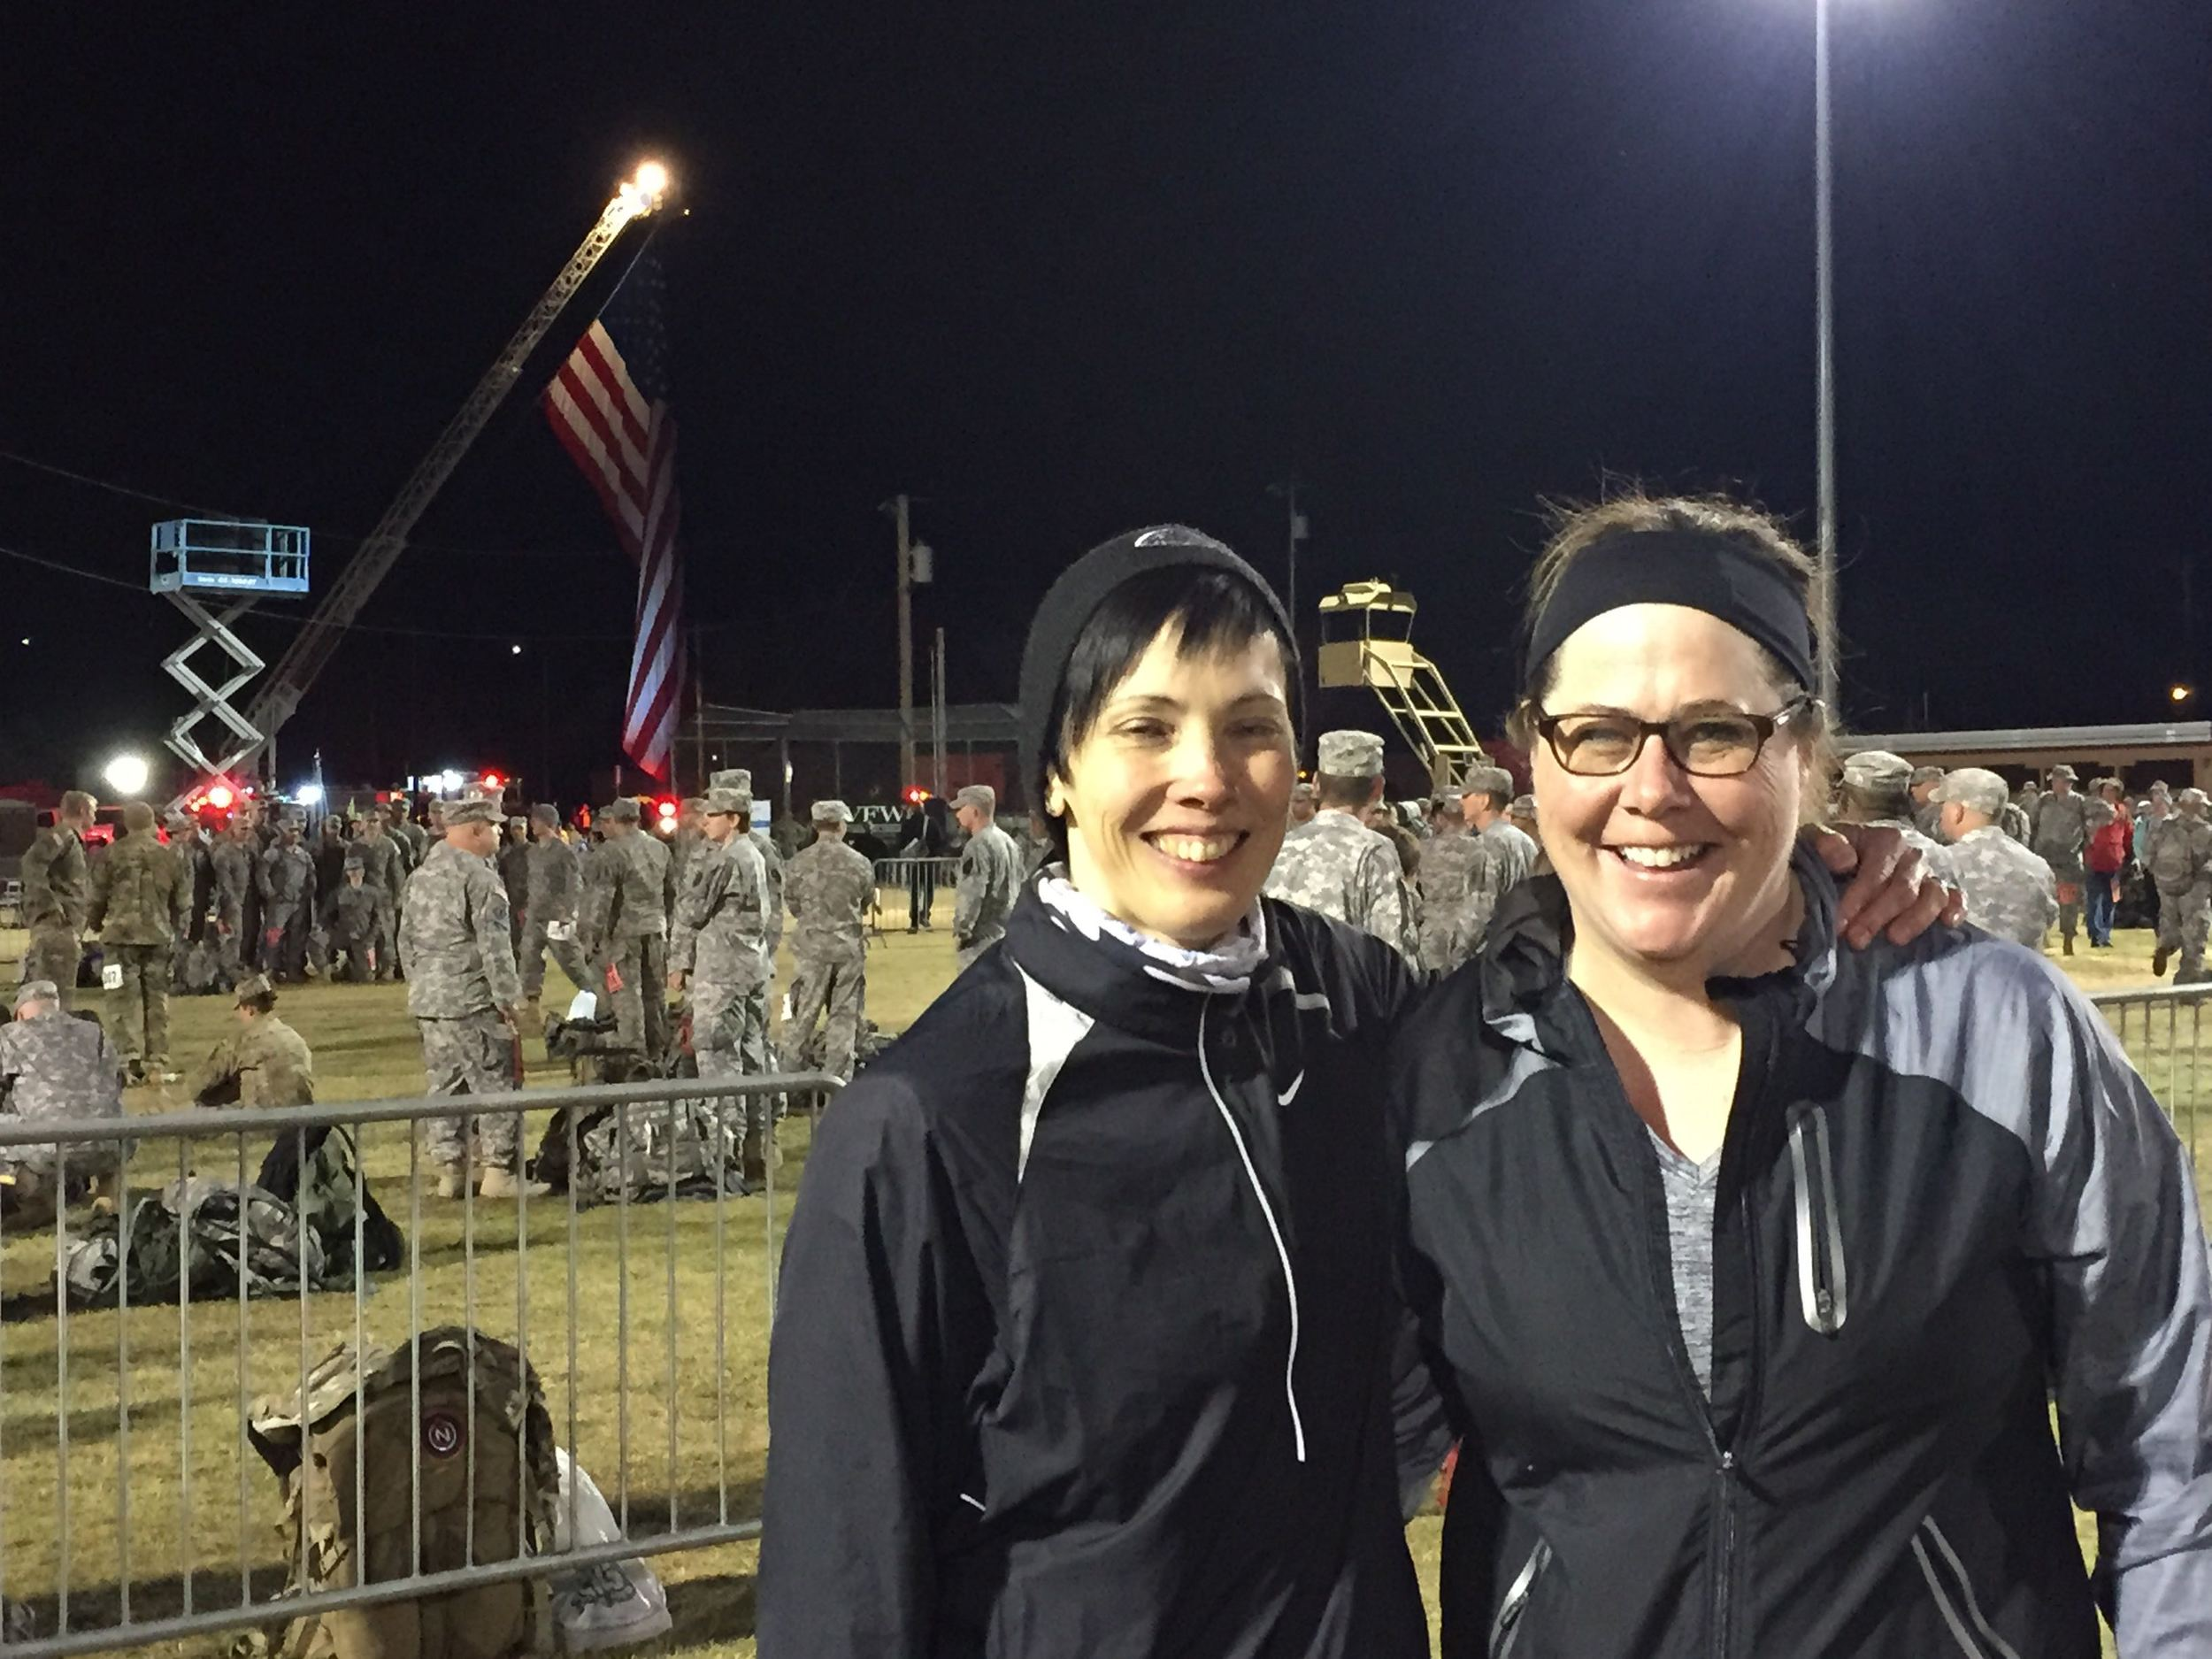 Me and Sue awaiting the opening ceremony. The big flag marks the starting line.